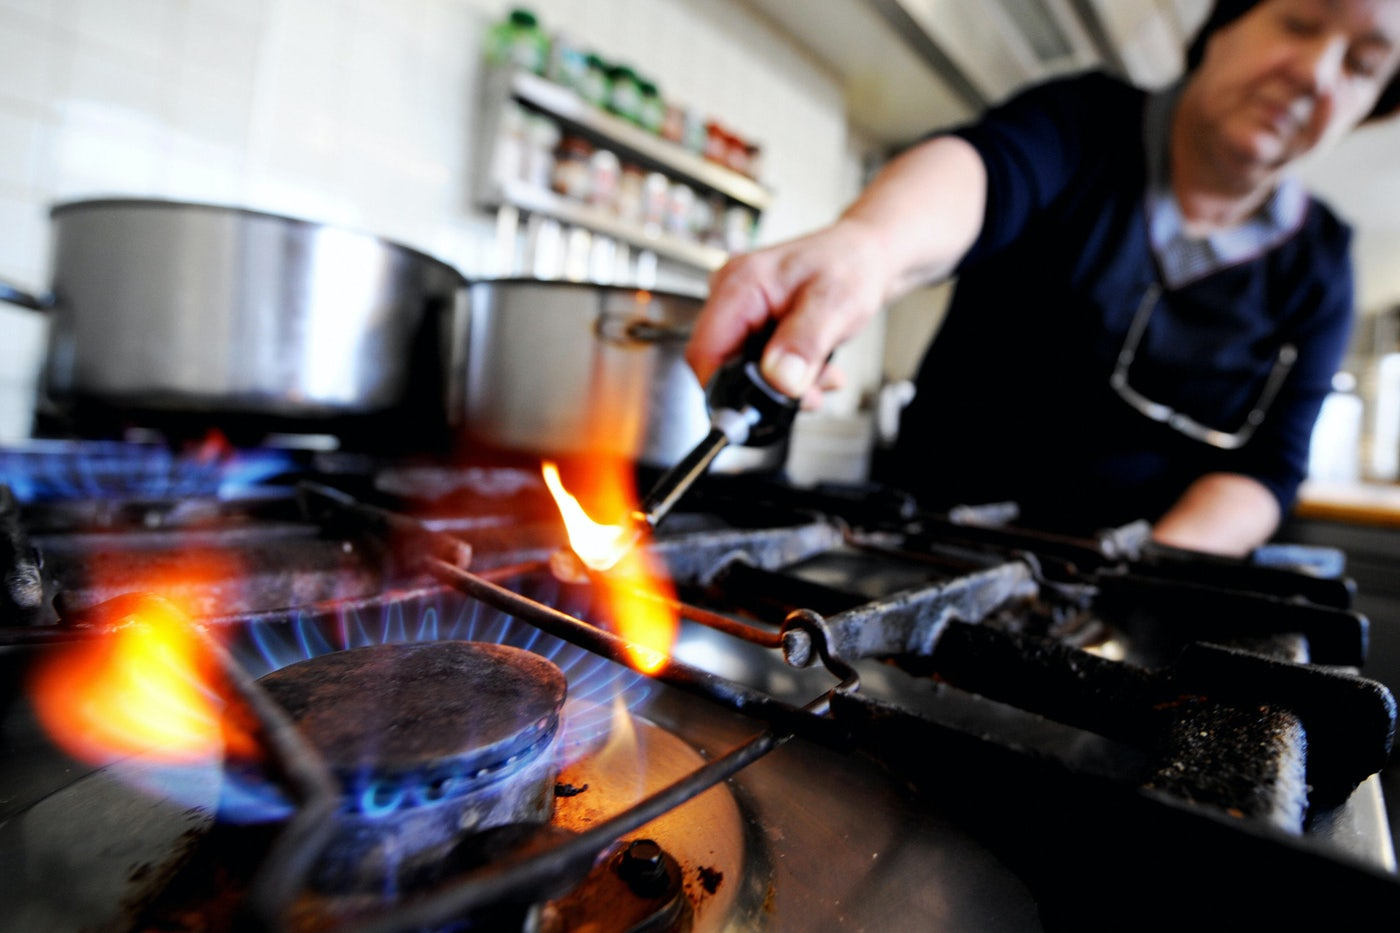 A person lights a gas stove.